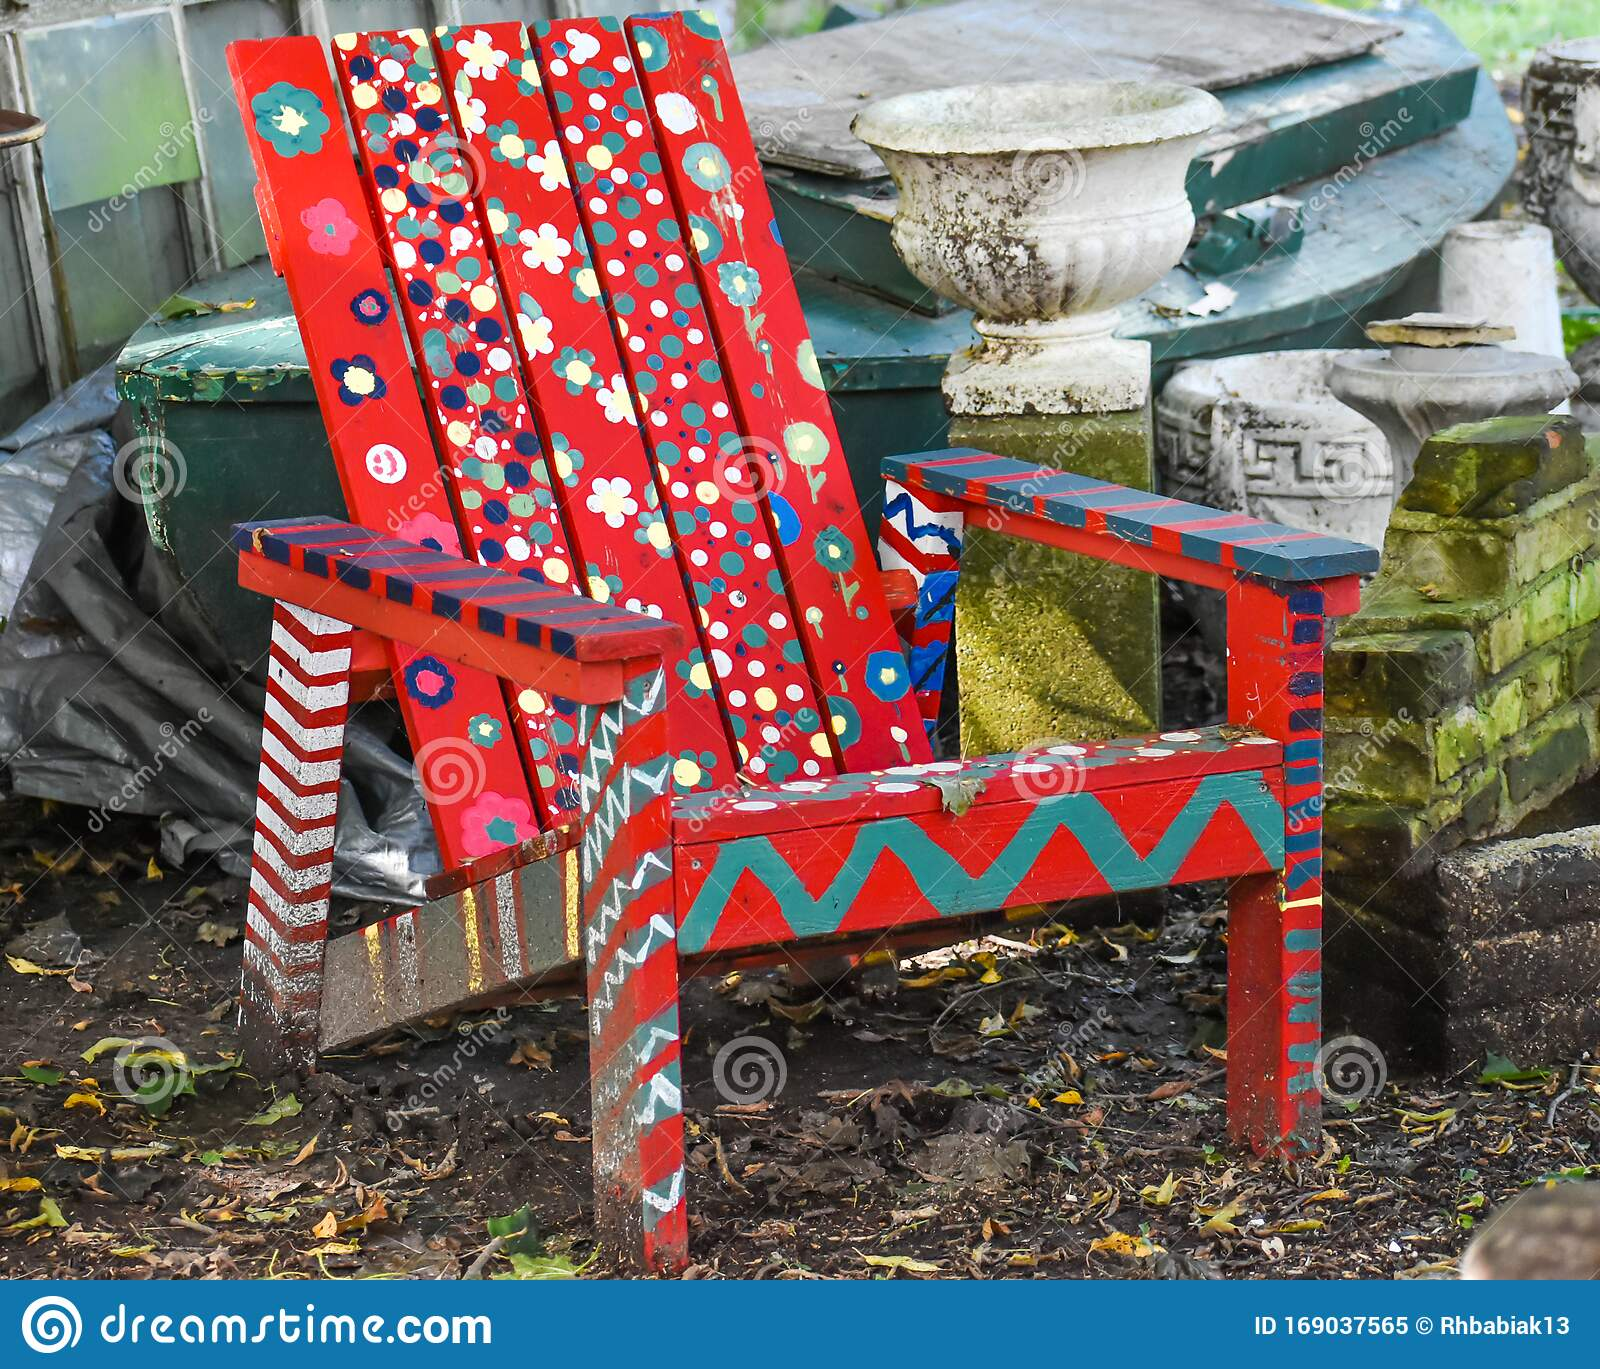 Adirondack Chair Painted Red With Flowers Stock Image Image Of Sitting Adirondack 169037565